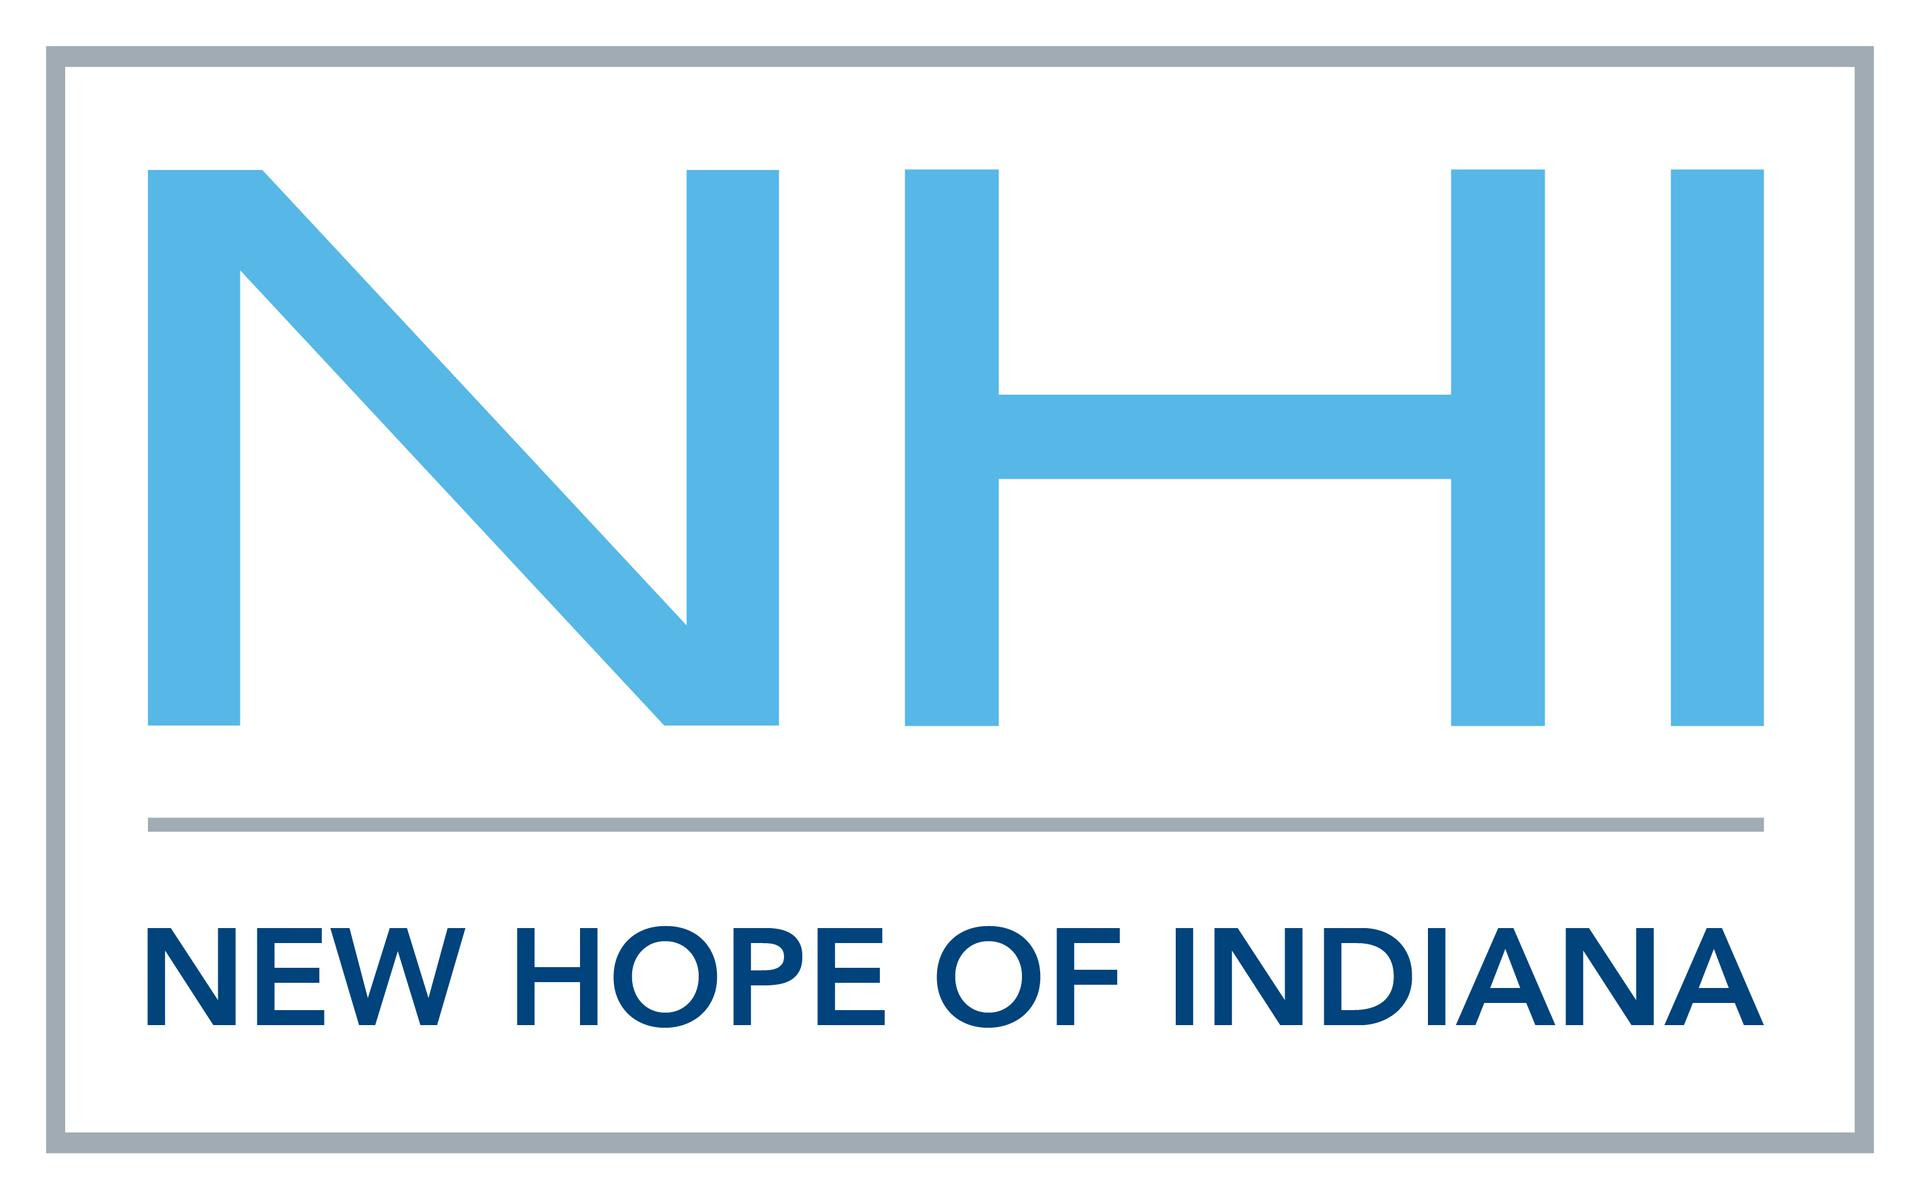 New Hope of Indiana